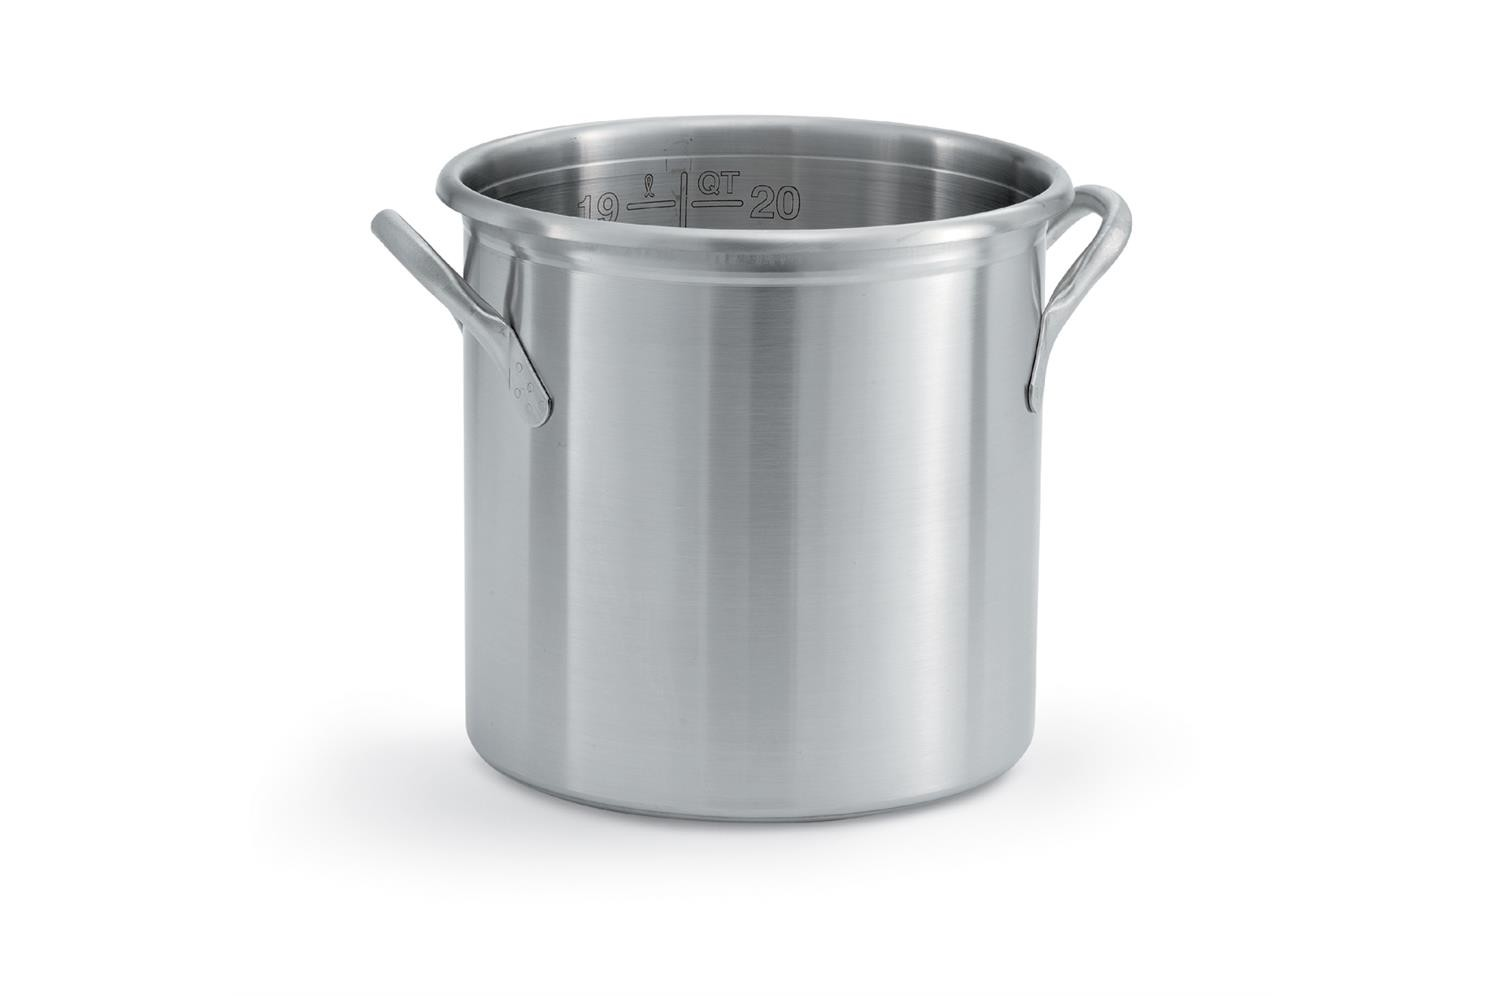 Vollrath 77620 Try Ply Stainless Steel Stock Pot 24 Qt.